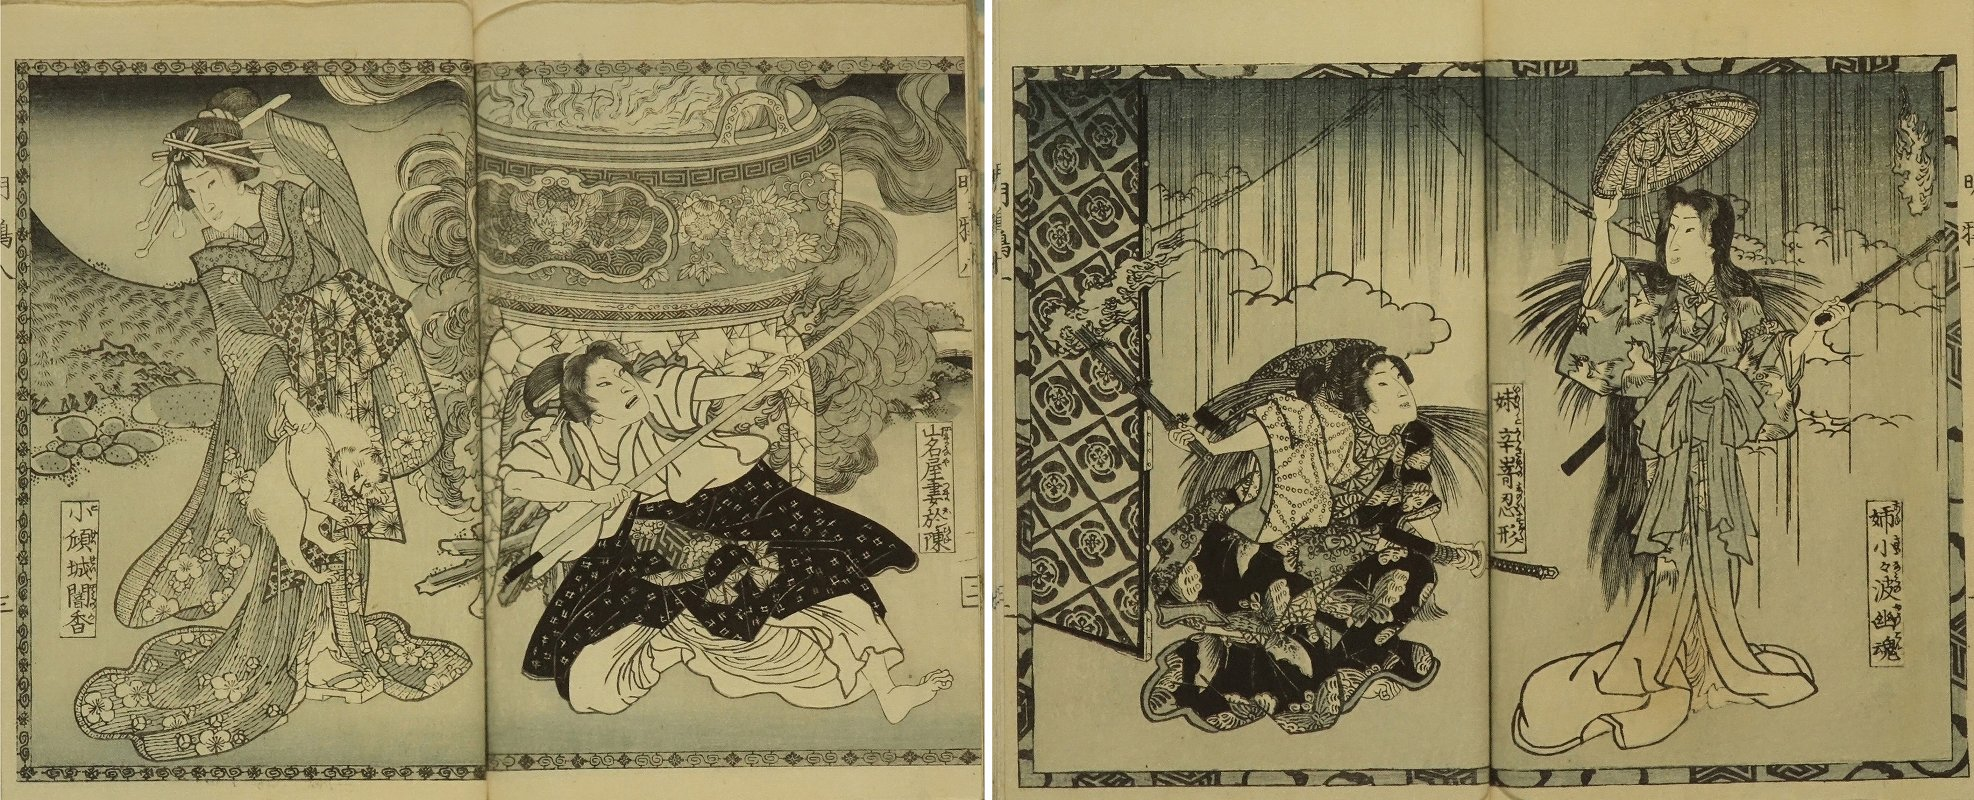 KUNISADA II <i>Akegarasu sumie no uchikake</i>: Shuntei Shumba and Ryutei Tanehiko, <i>author</i>s, Utagawa Kunisada II and Kunimasa, <i>illustrator</i>s, fifteen vols., bound to seven, complete, 1861-1867, come volumes with minor wormholes